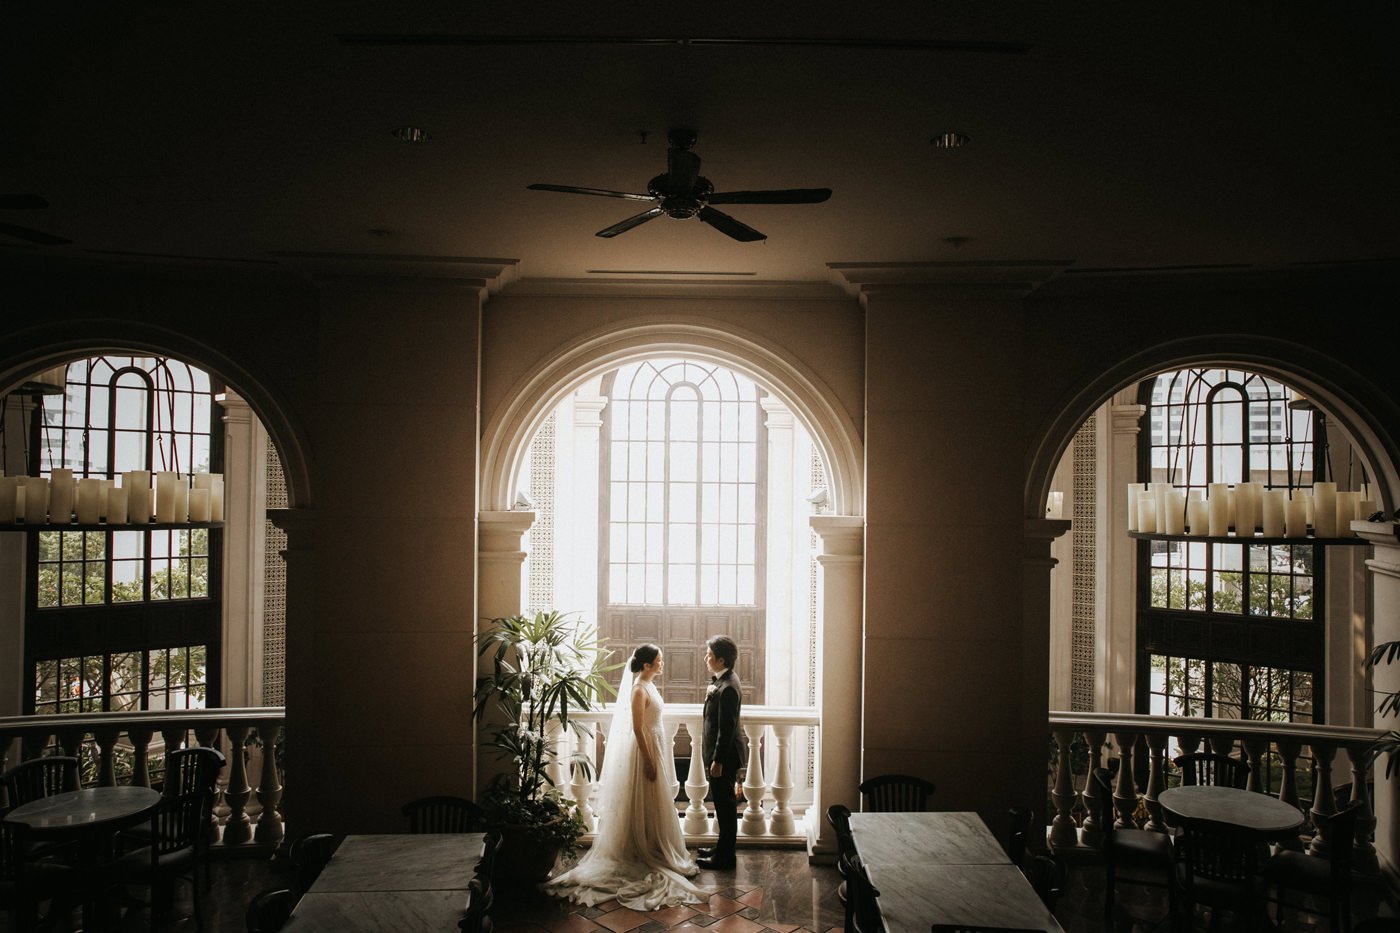 sampoerna strategic square wedding vina ken iluminen destination photographer jakarta